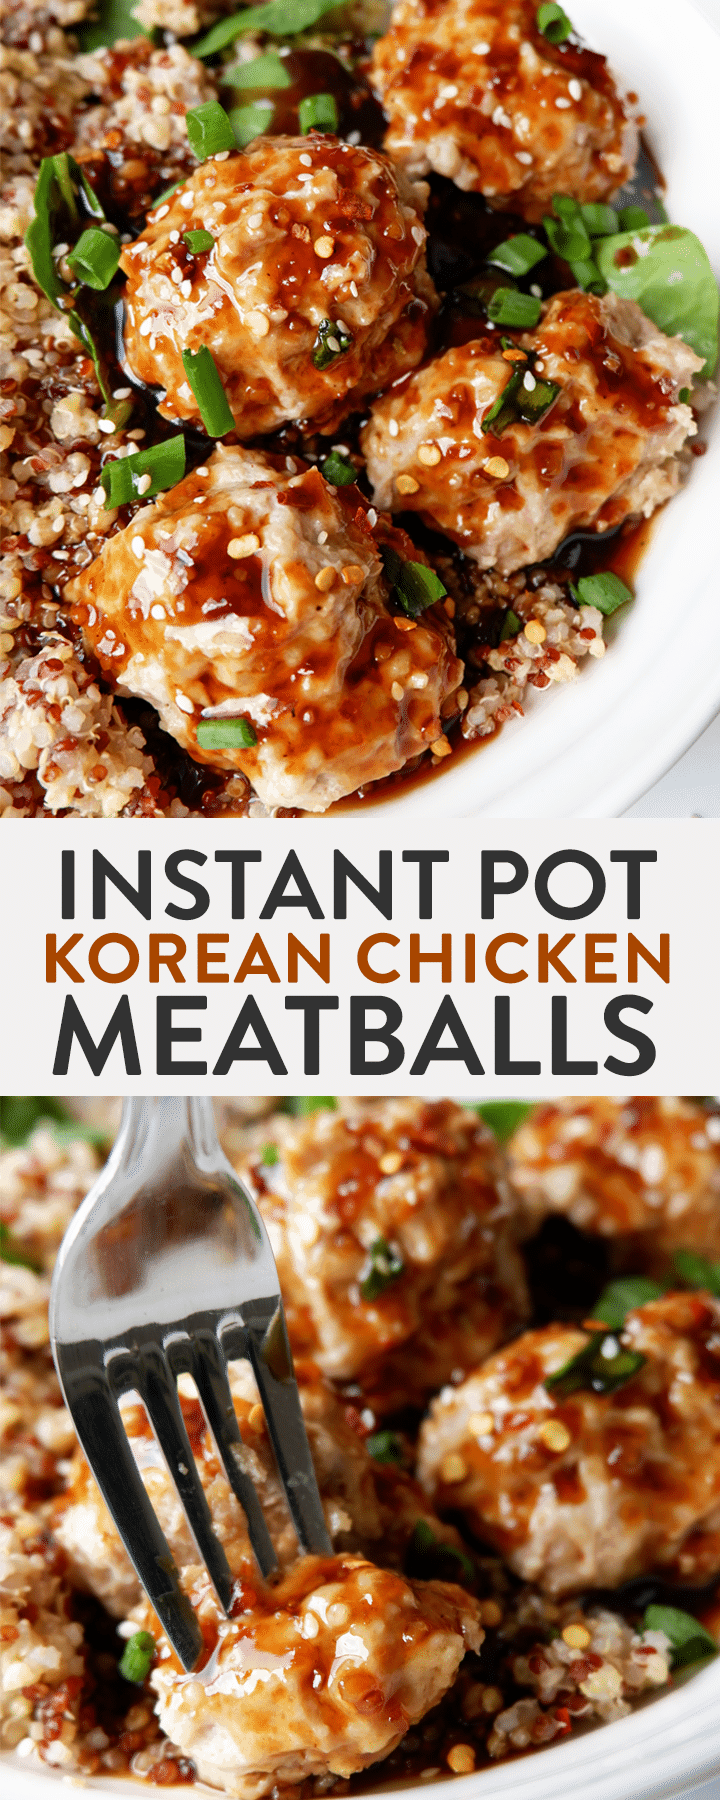 Instant pot korean chicken meatballs the bewitchin kitchen instant pot korean chicken meatballs this korean bbq meatballs recipe is lightened up with ground forumfinder Image collections